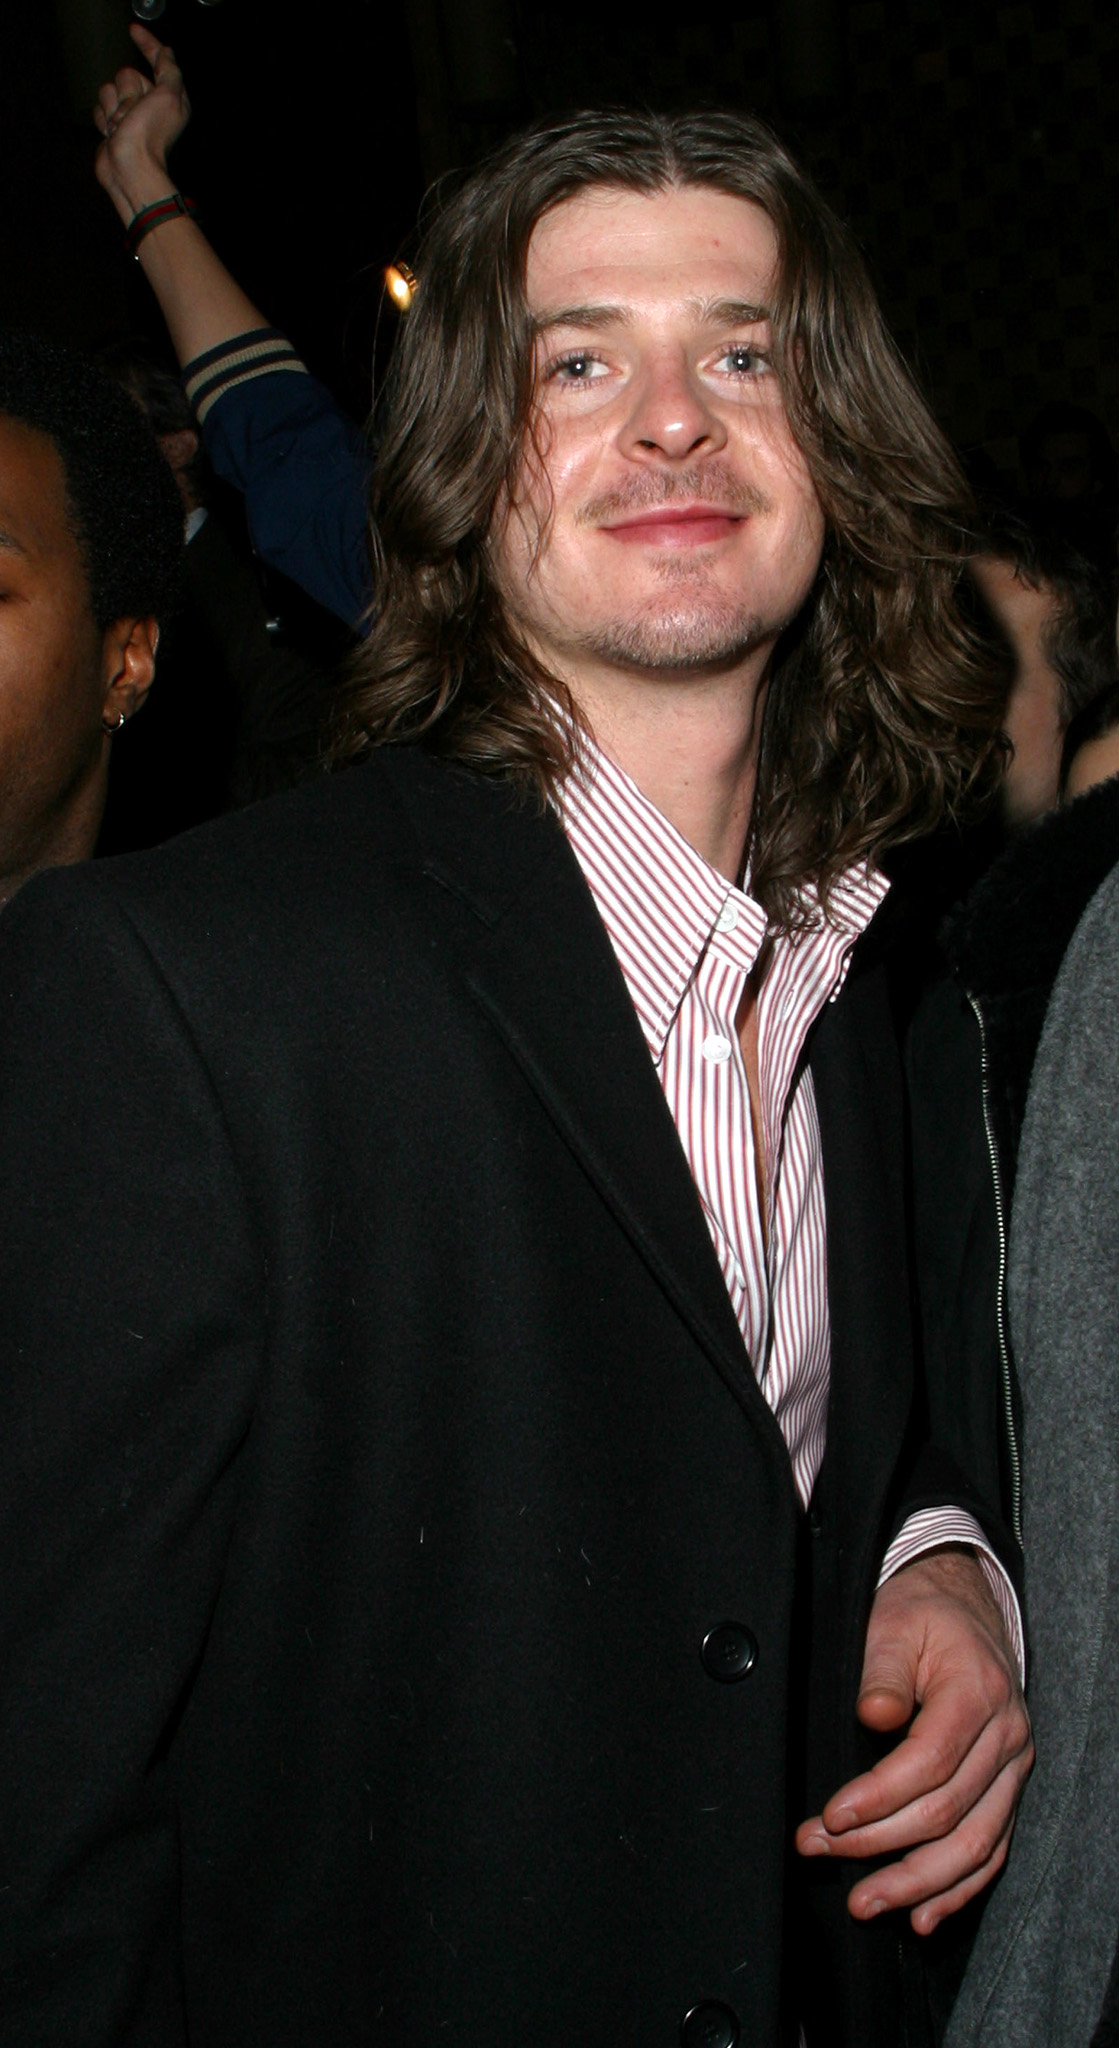 Thicke in 2003 (Getty Images)